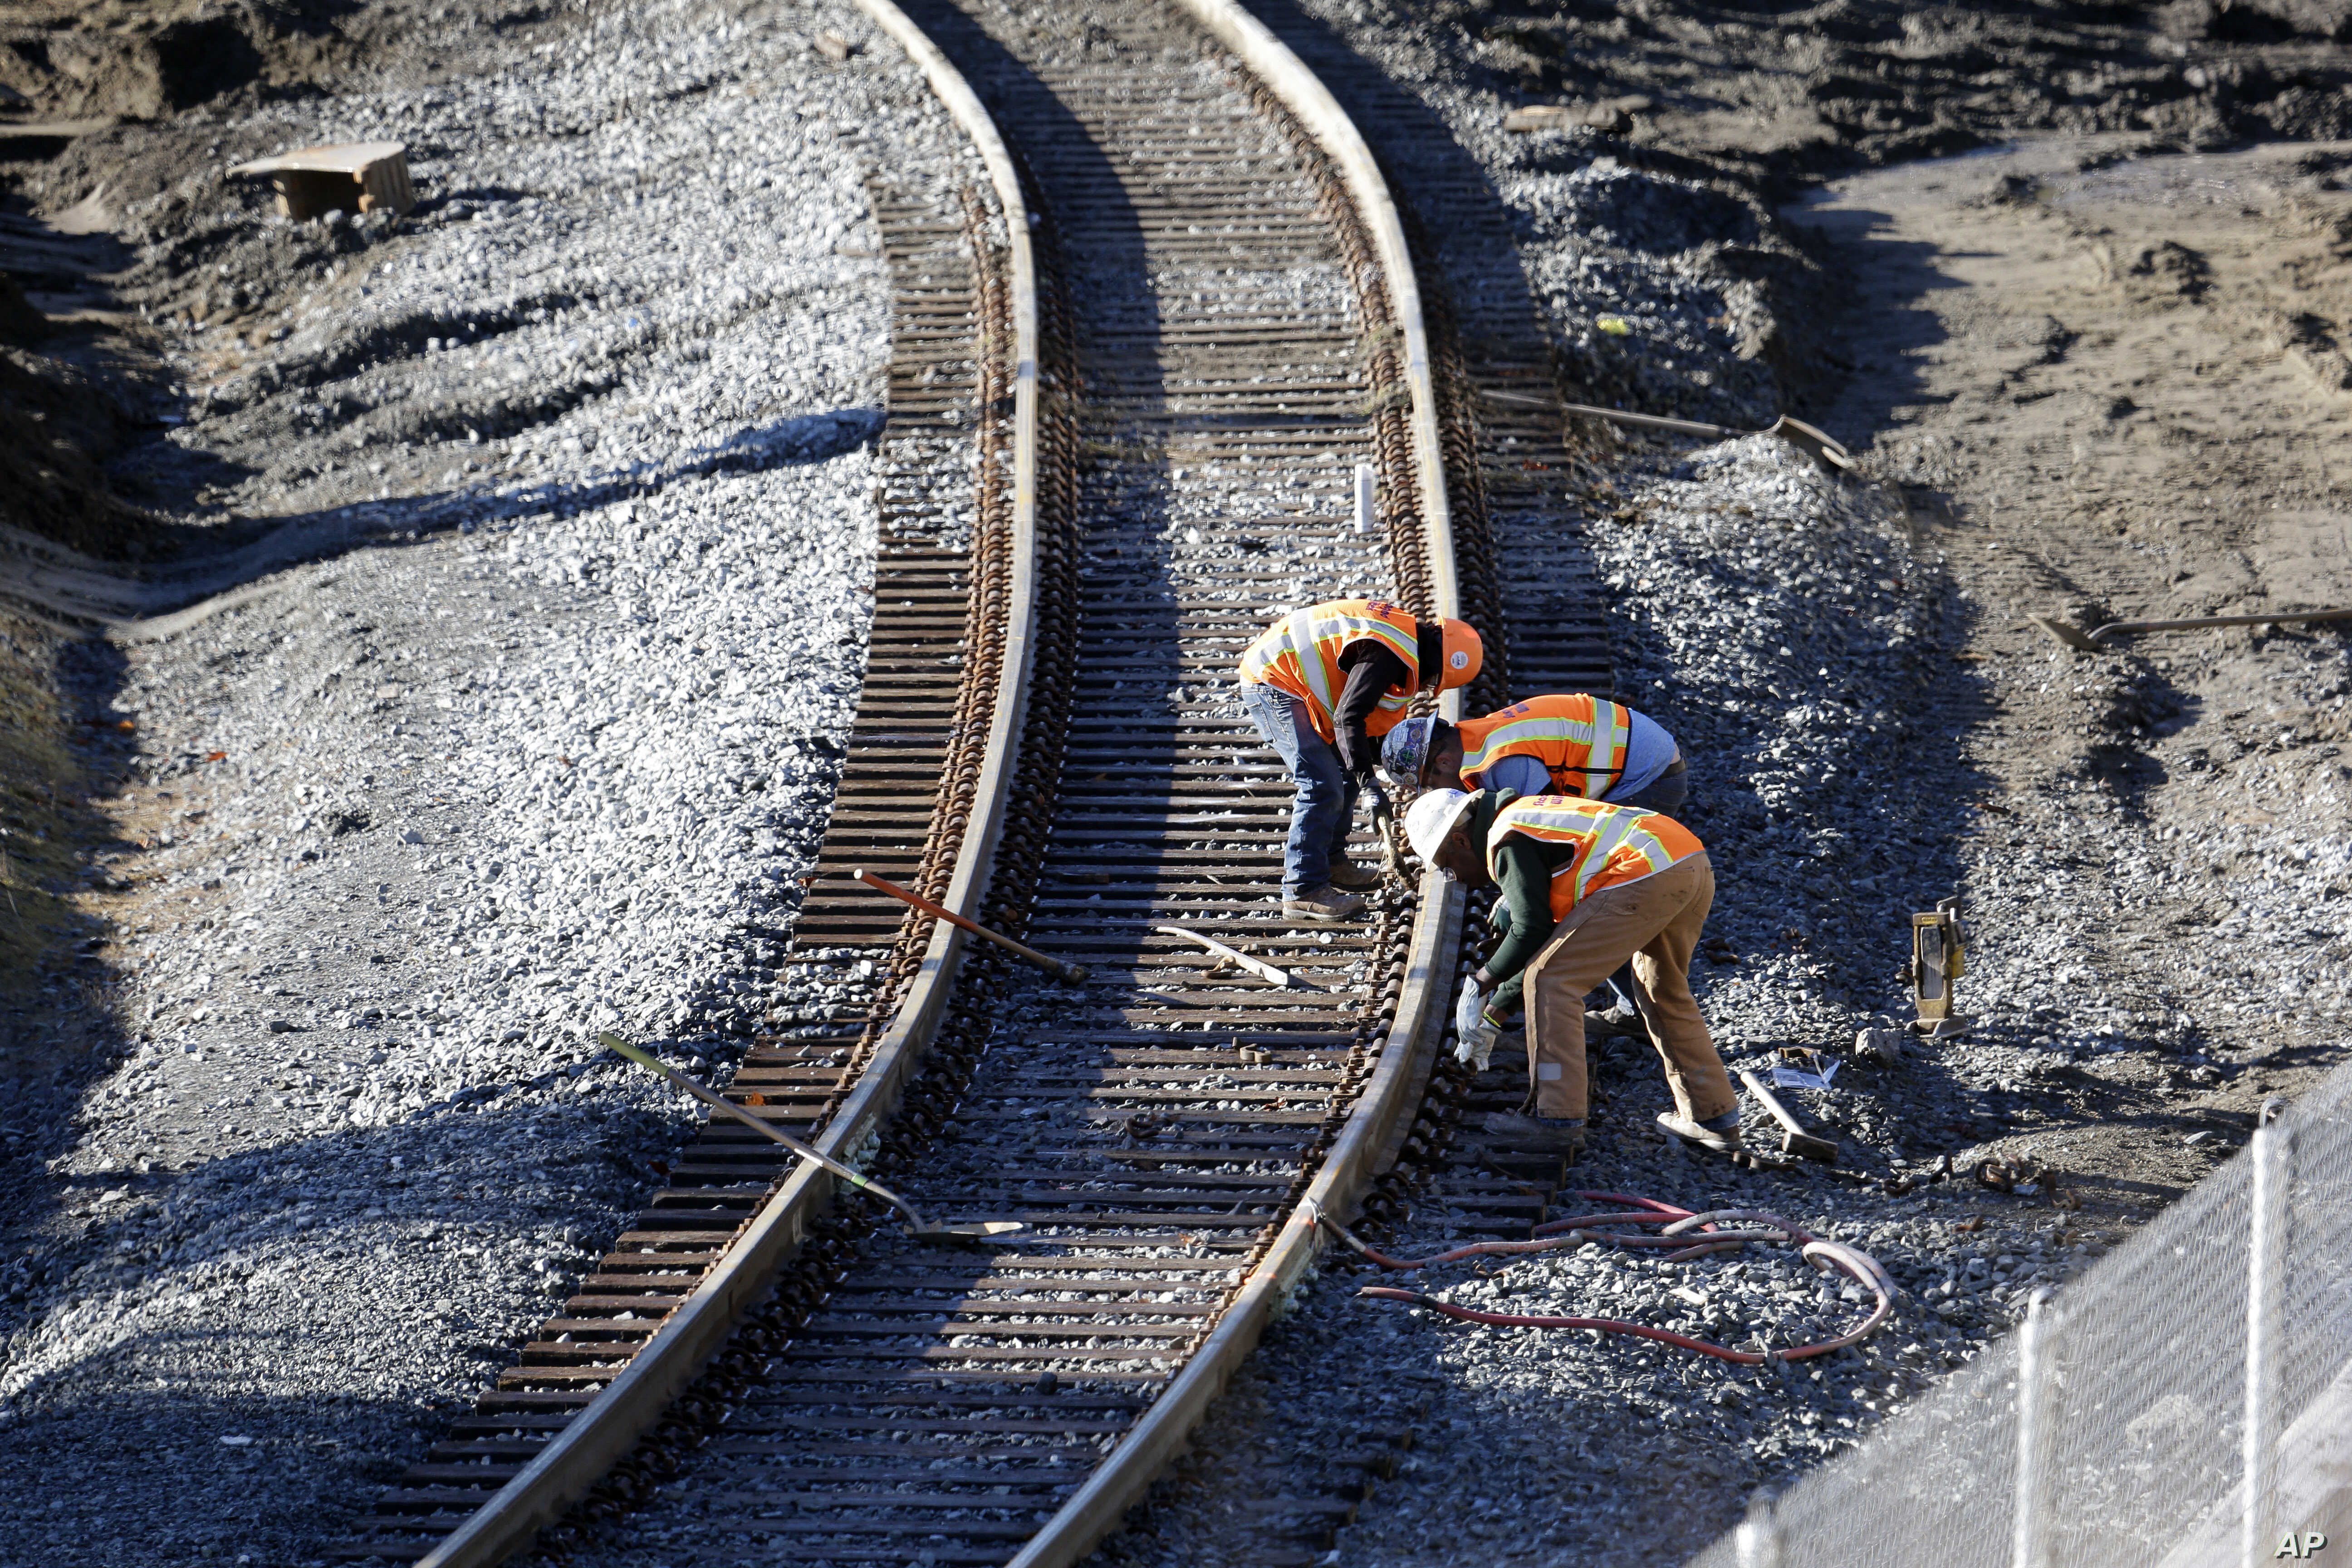 People work at the curve where an Amtrak train derailed onto Interstate 5 two days earlier, Dec. 20, 2017, in DuPont, Wash.